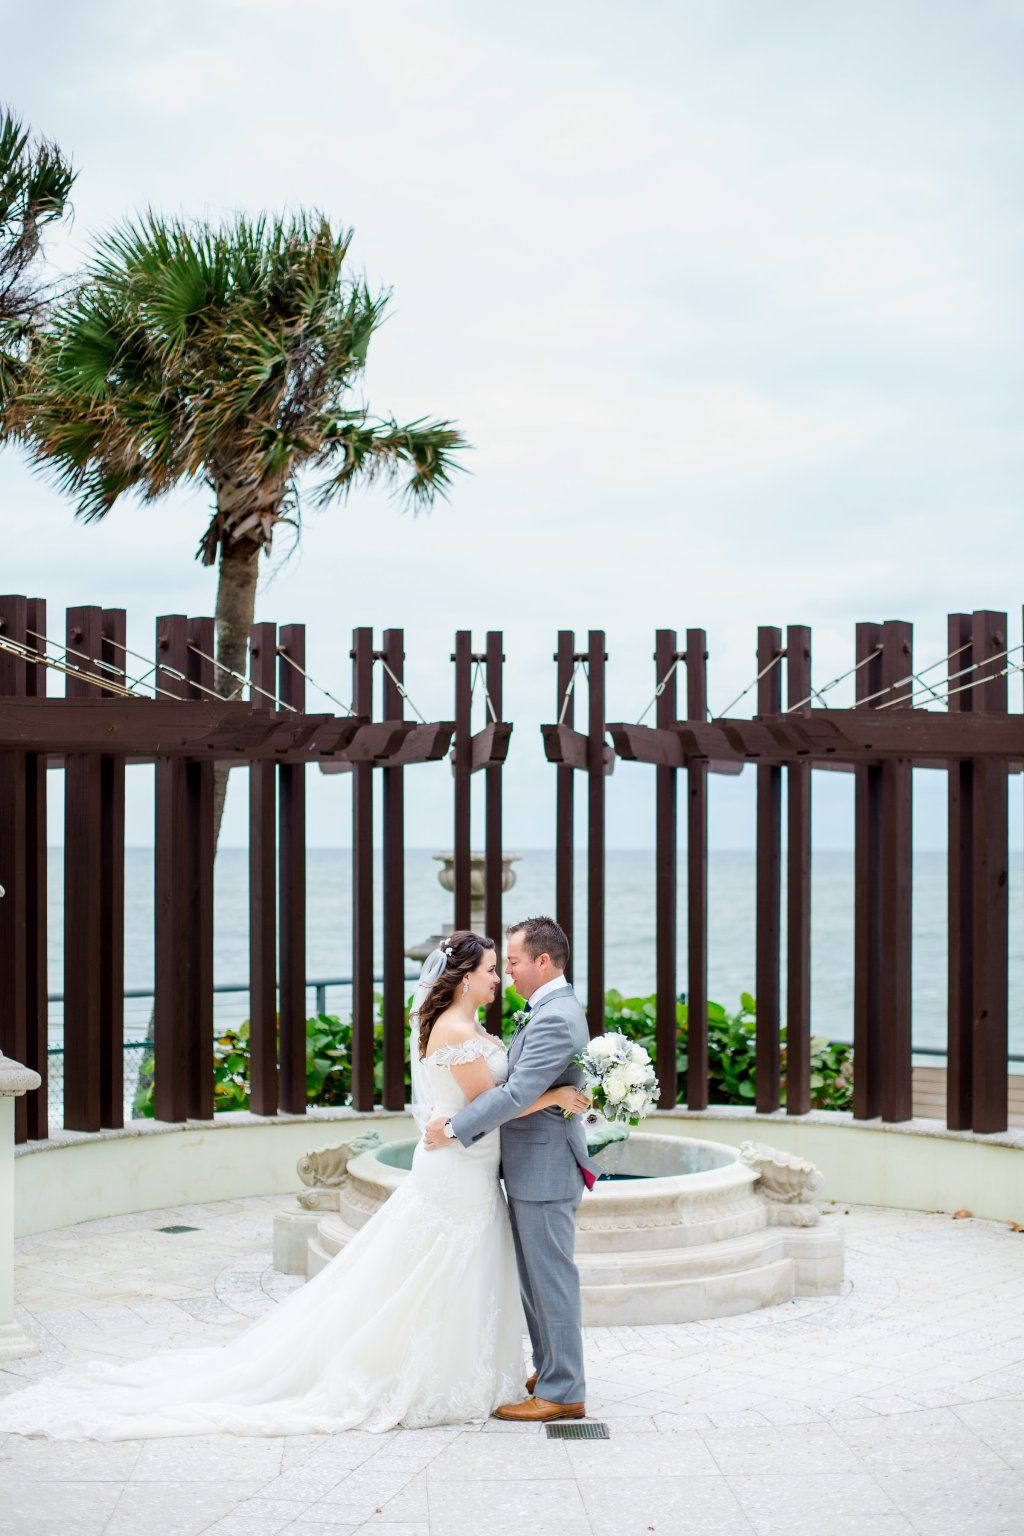 Vero Beach Wedding Plan It Events Orlando Planner Drake Photography